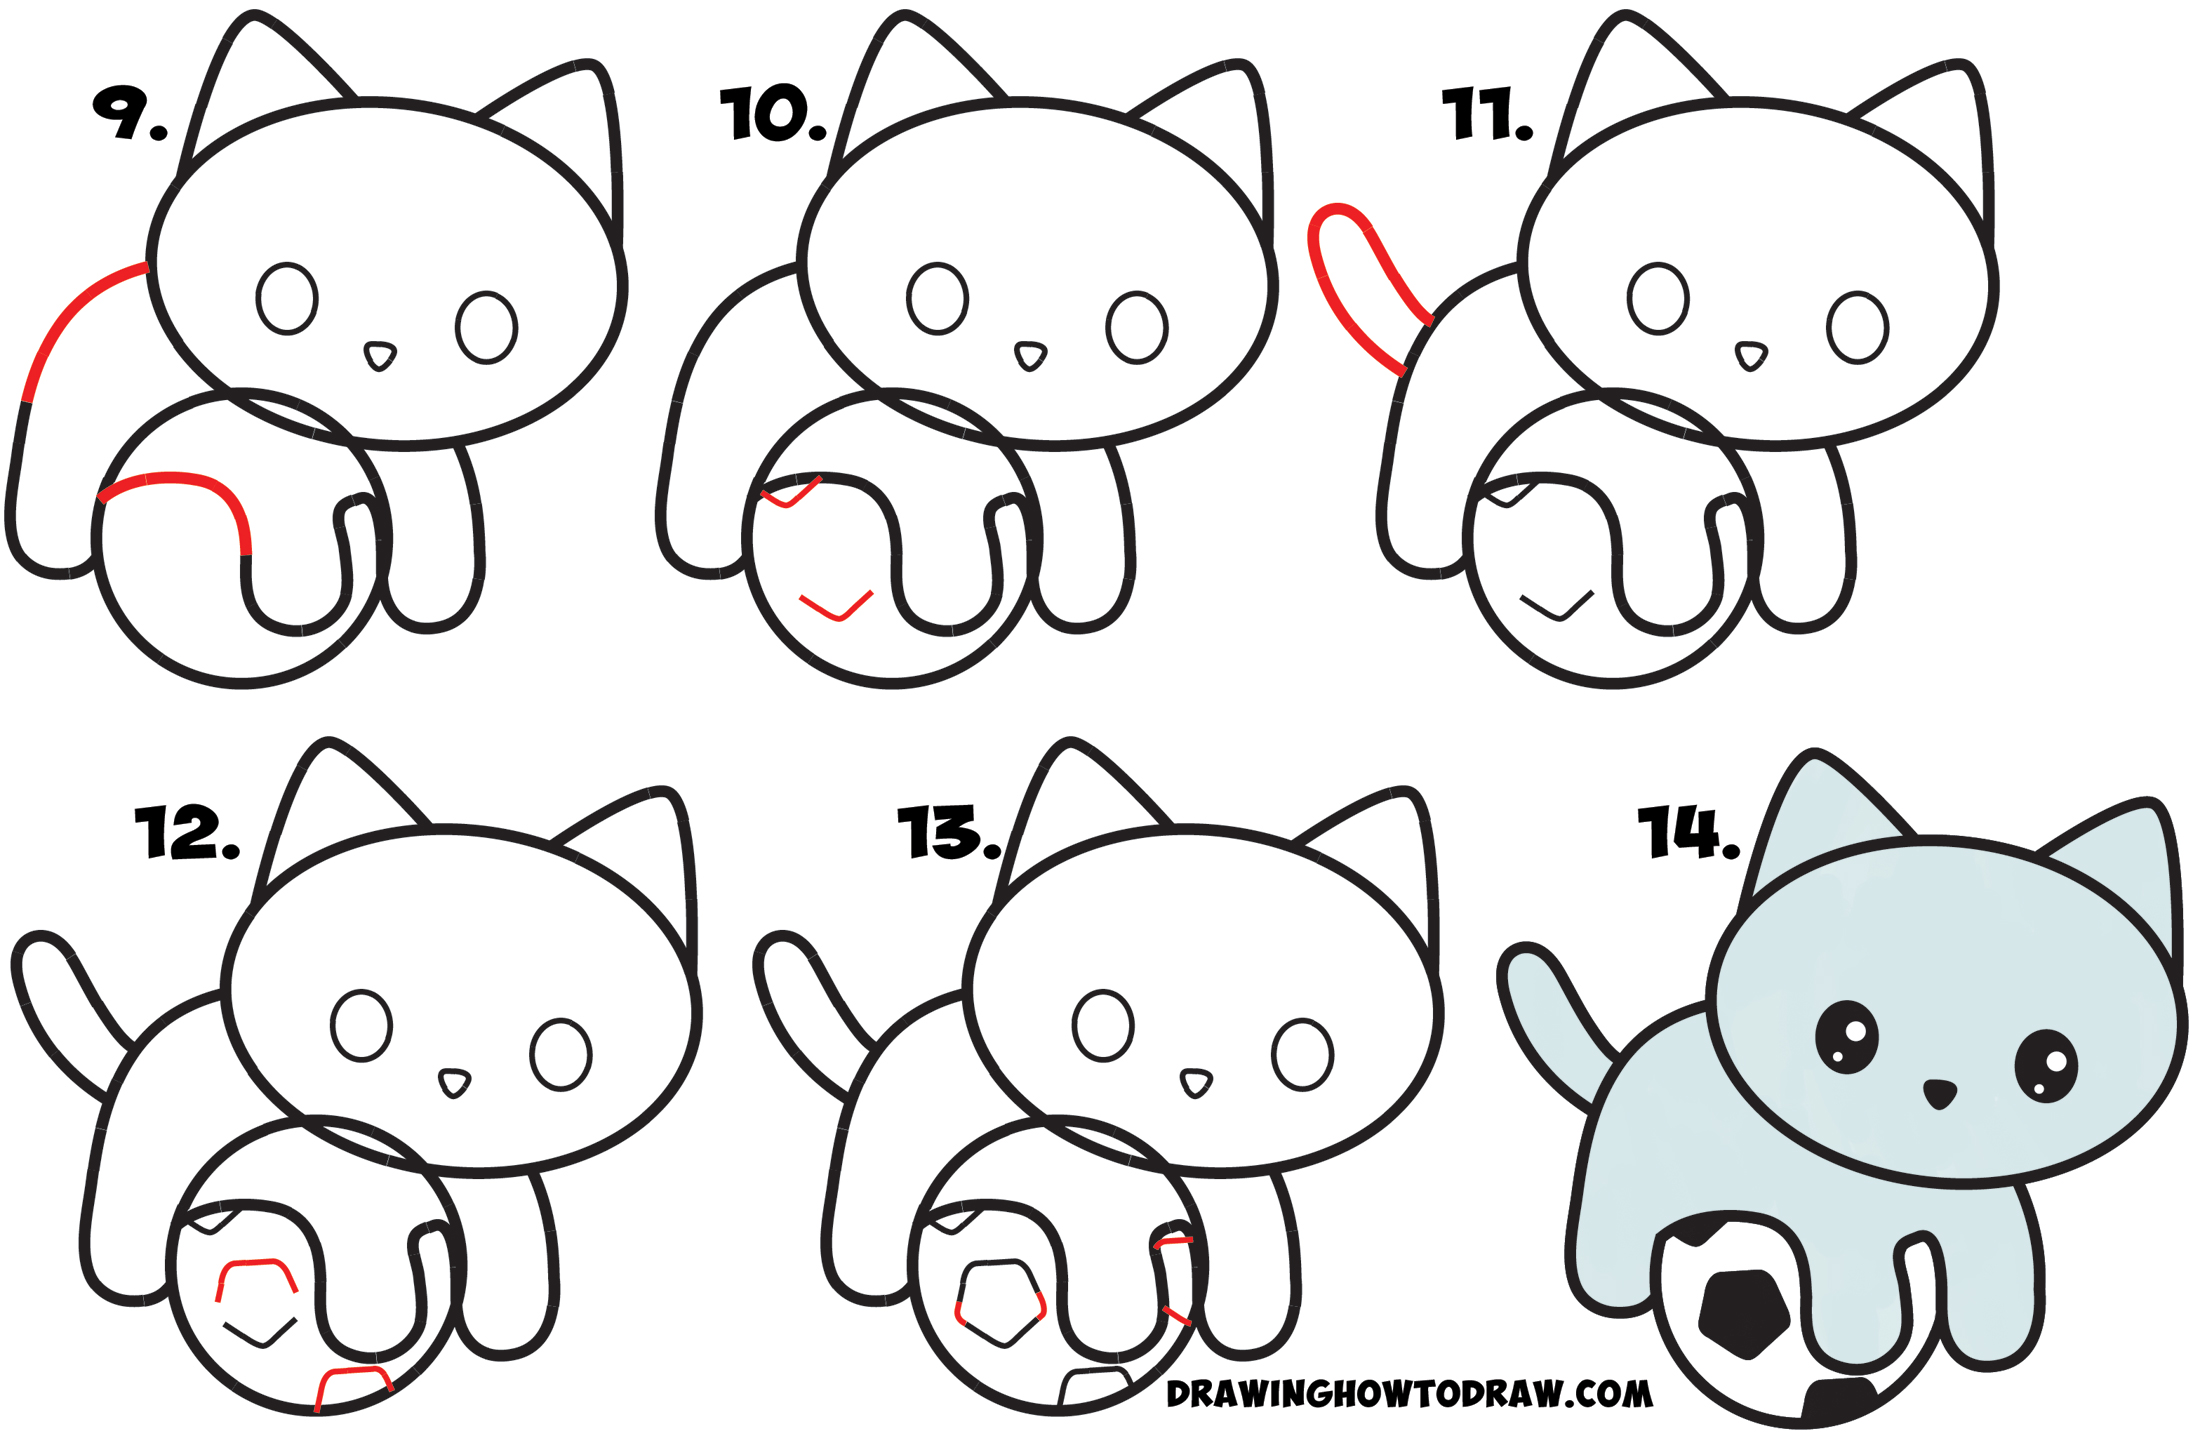 How To Draw A Cute Kitten Playing On A Soccer Ball Easy